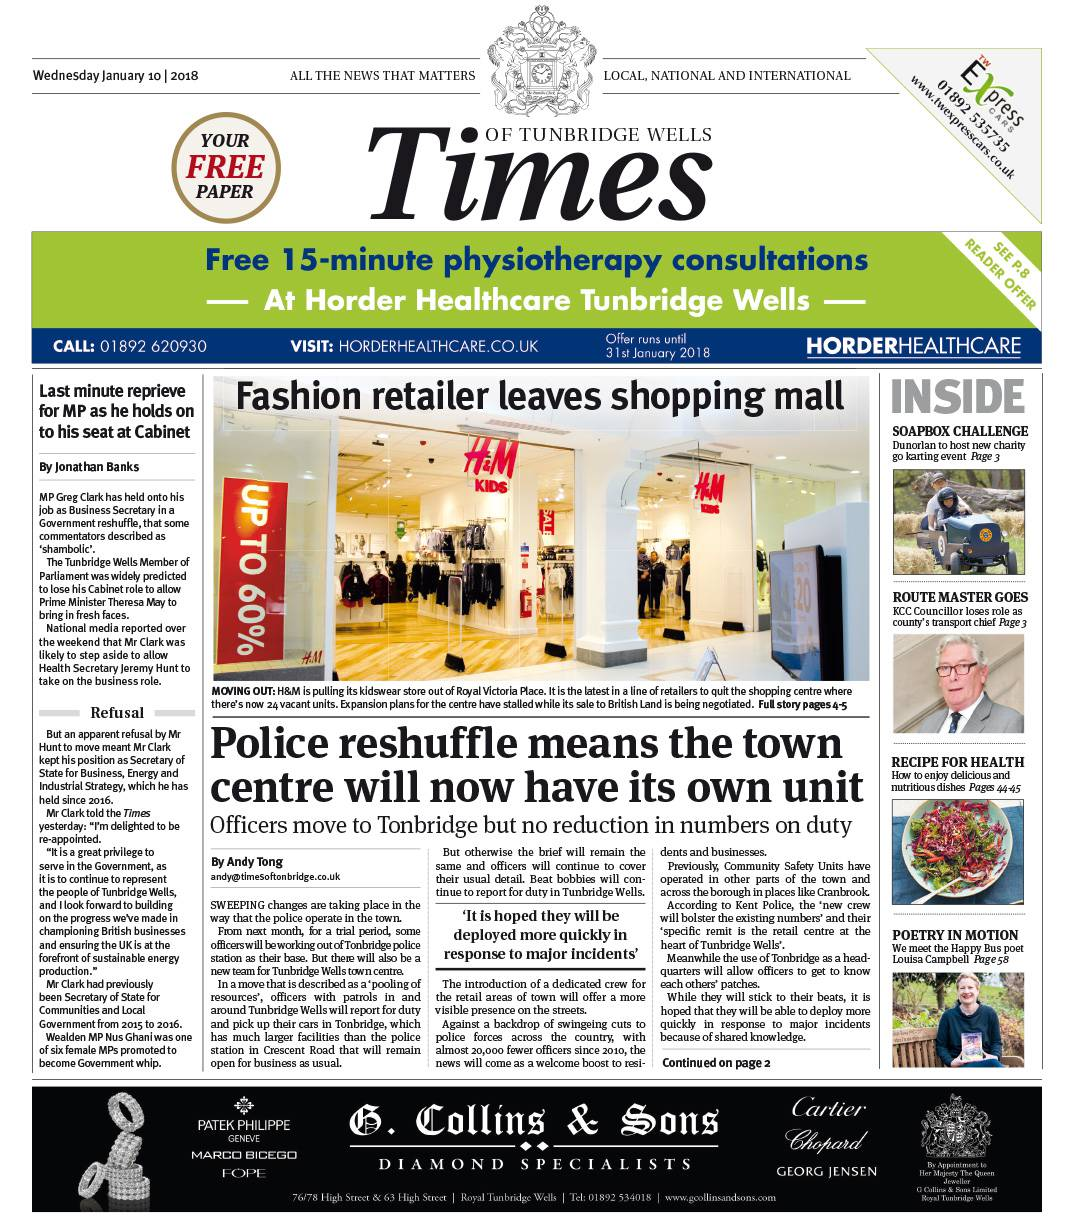 Read the Times of Tunbridge Wells 10th January 2018